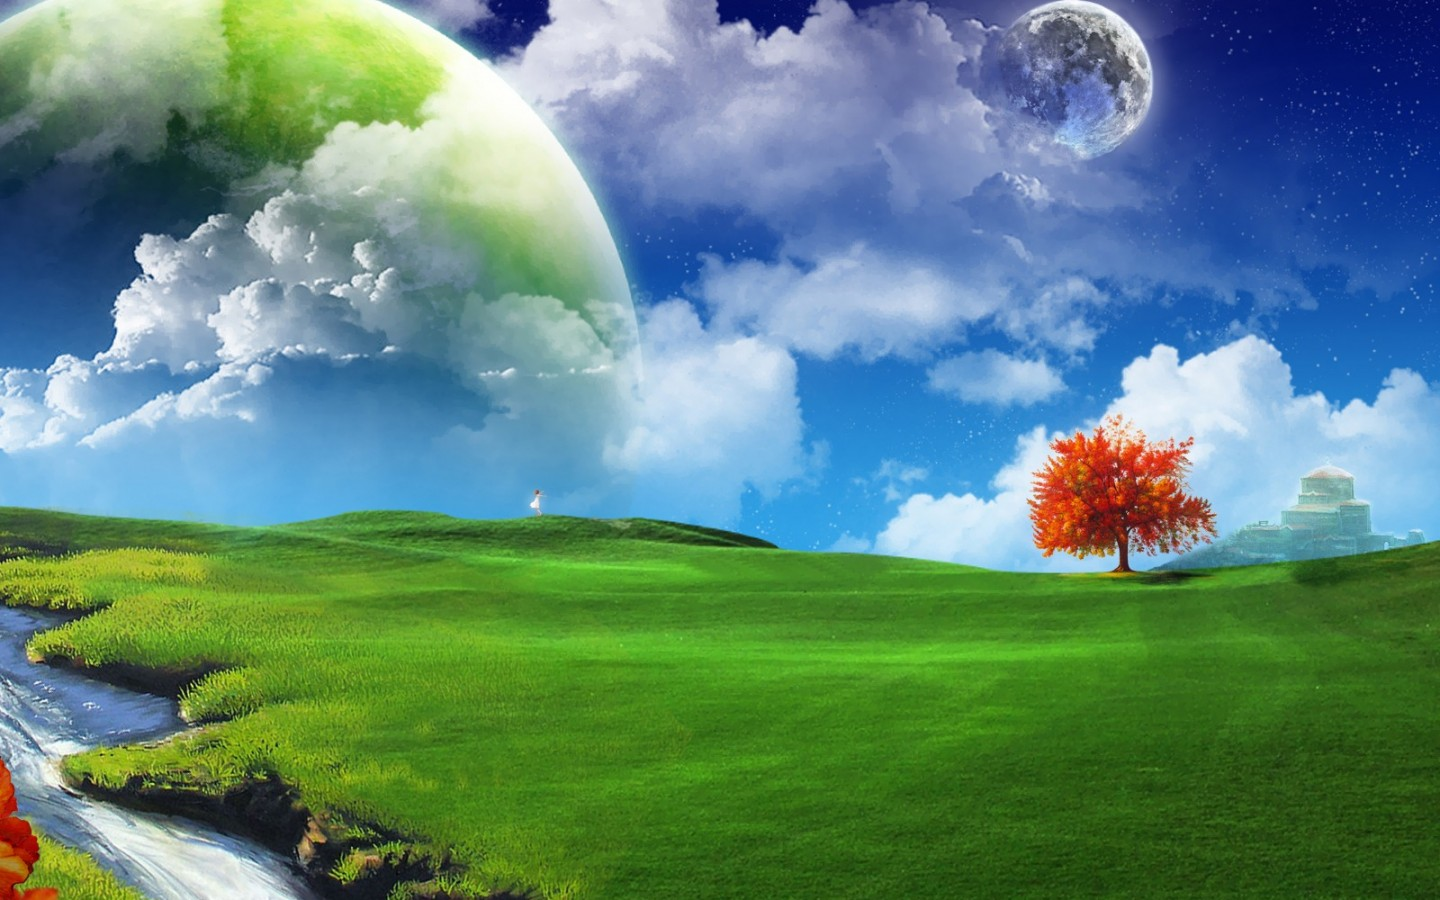 Beautiful Nature Wallpaper for Your Desktop   Cah Wallpaper 1440x900